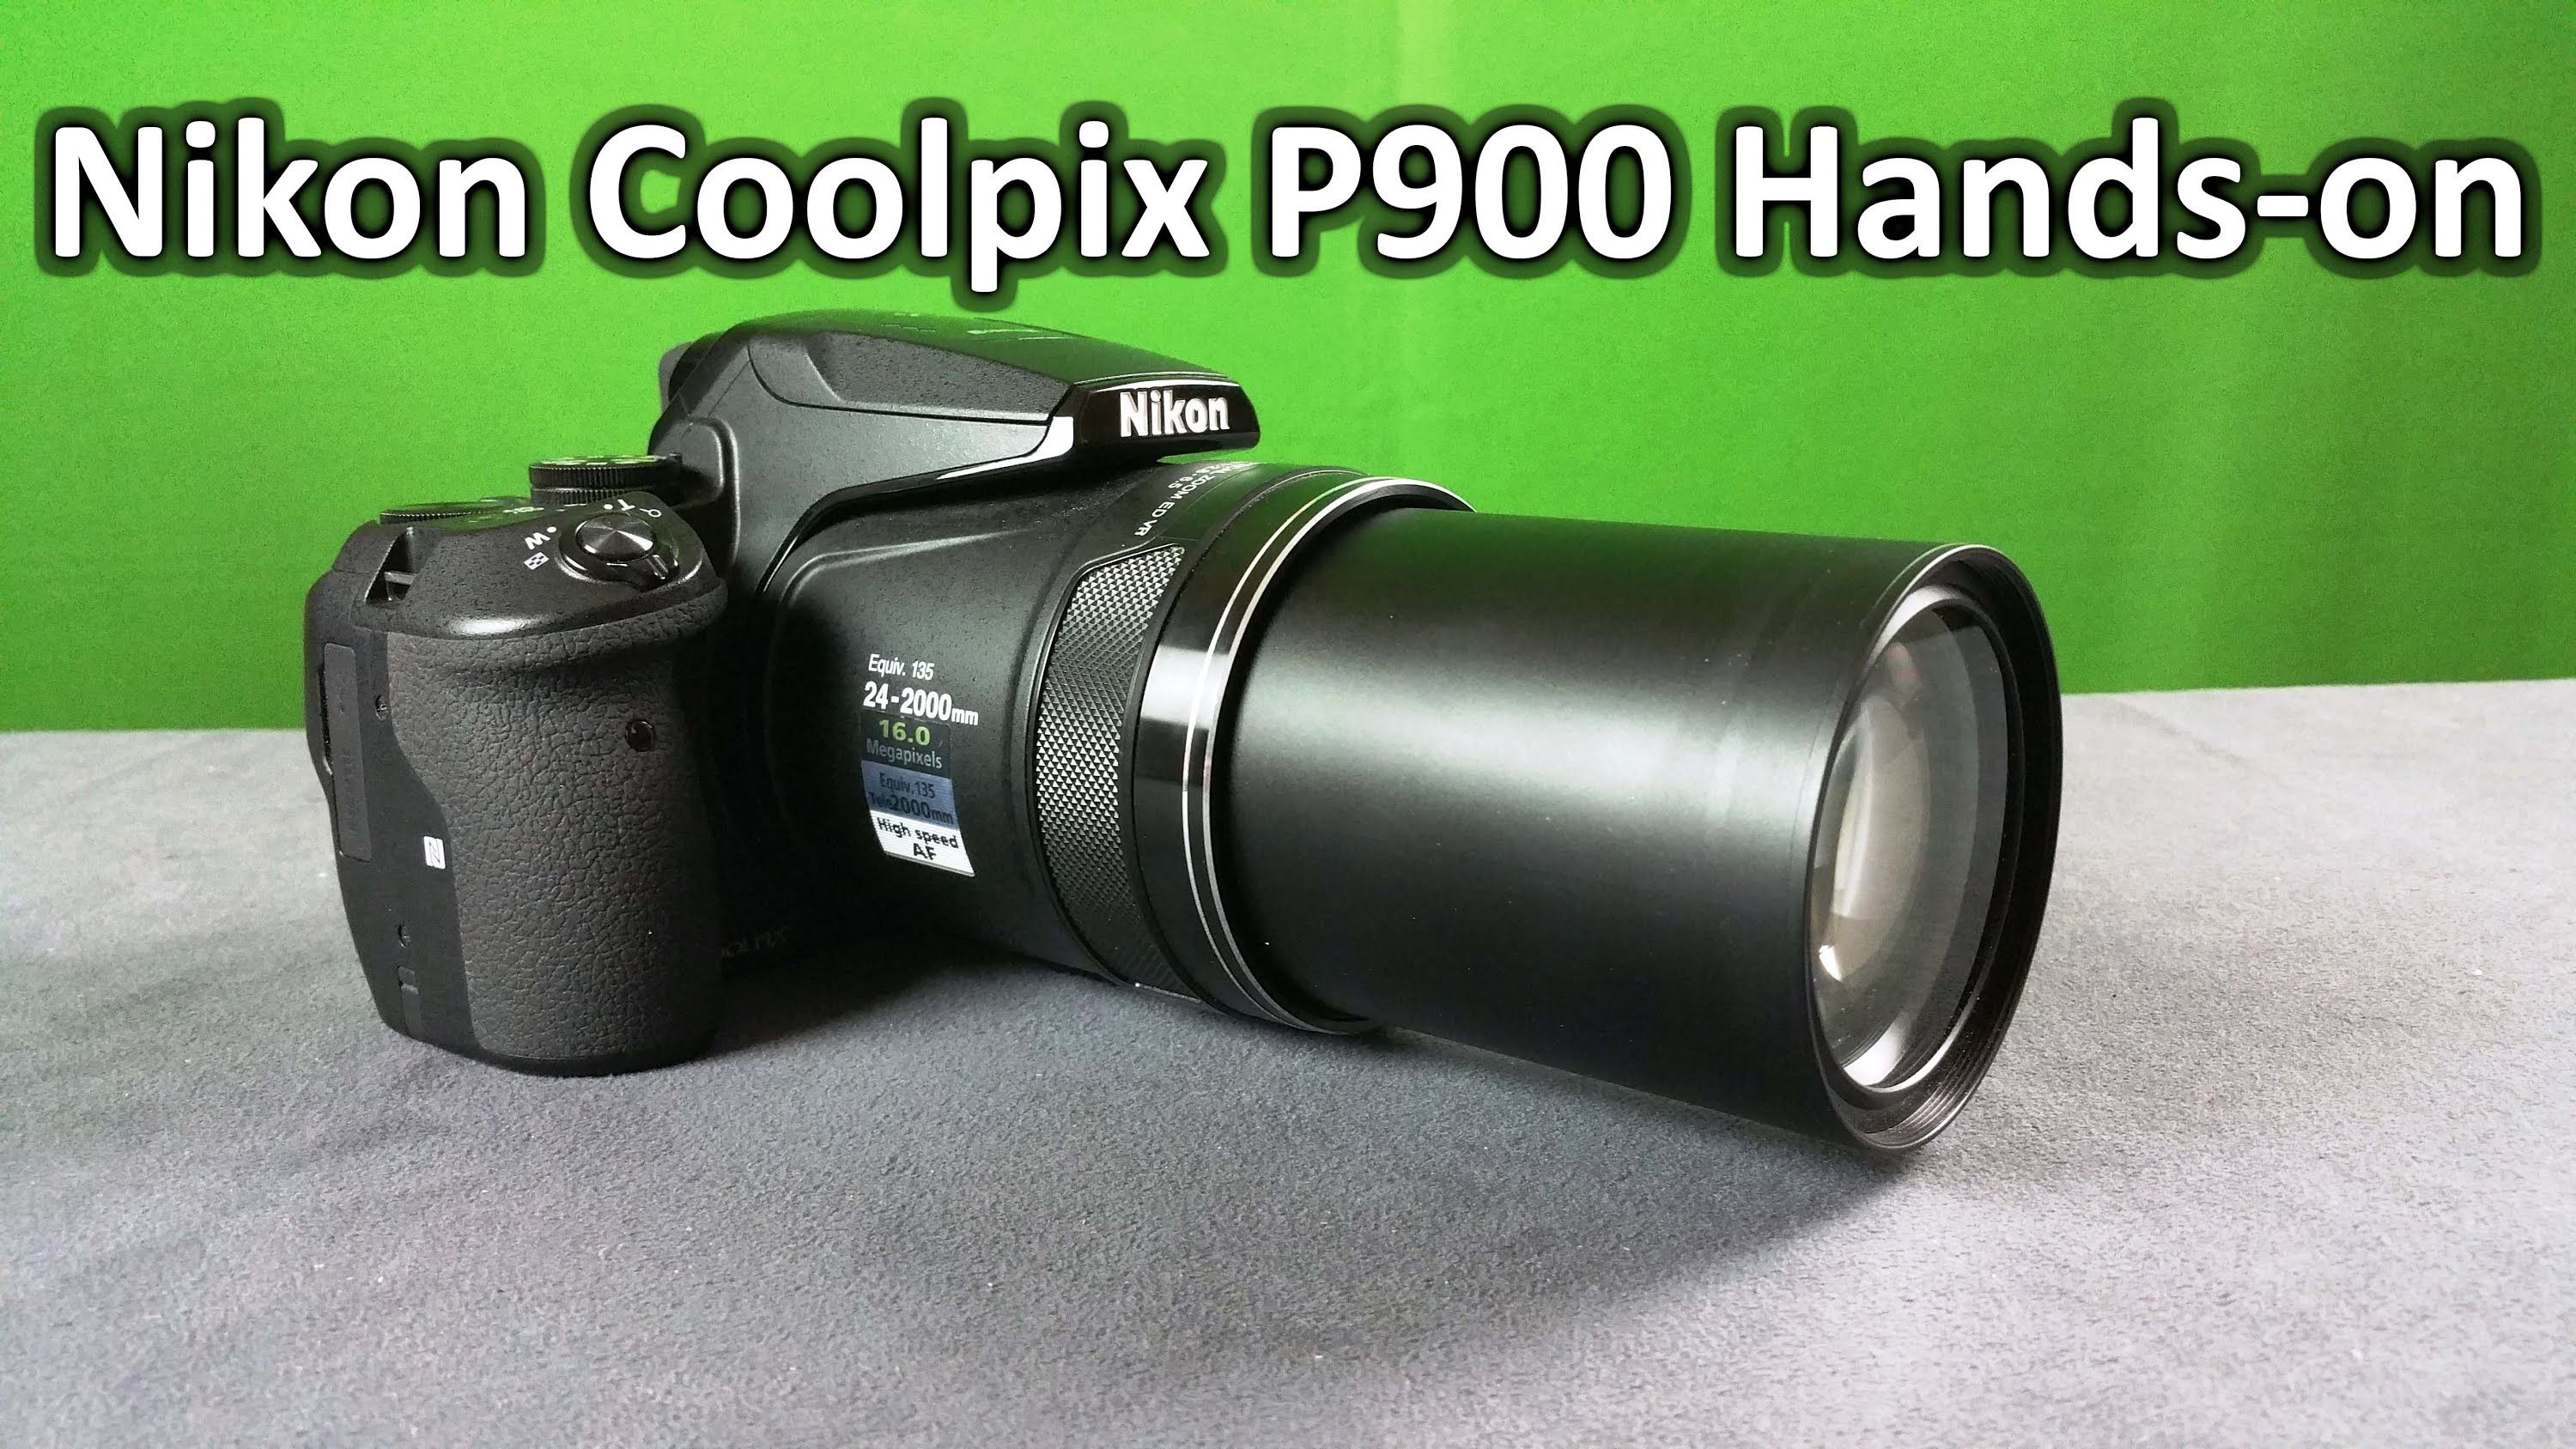 Nikon Coolpix P900 Full Hands On Review With Real Life Image And Video S Coolpix P900 Nikon P900 Nikon Coolpix P900